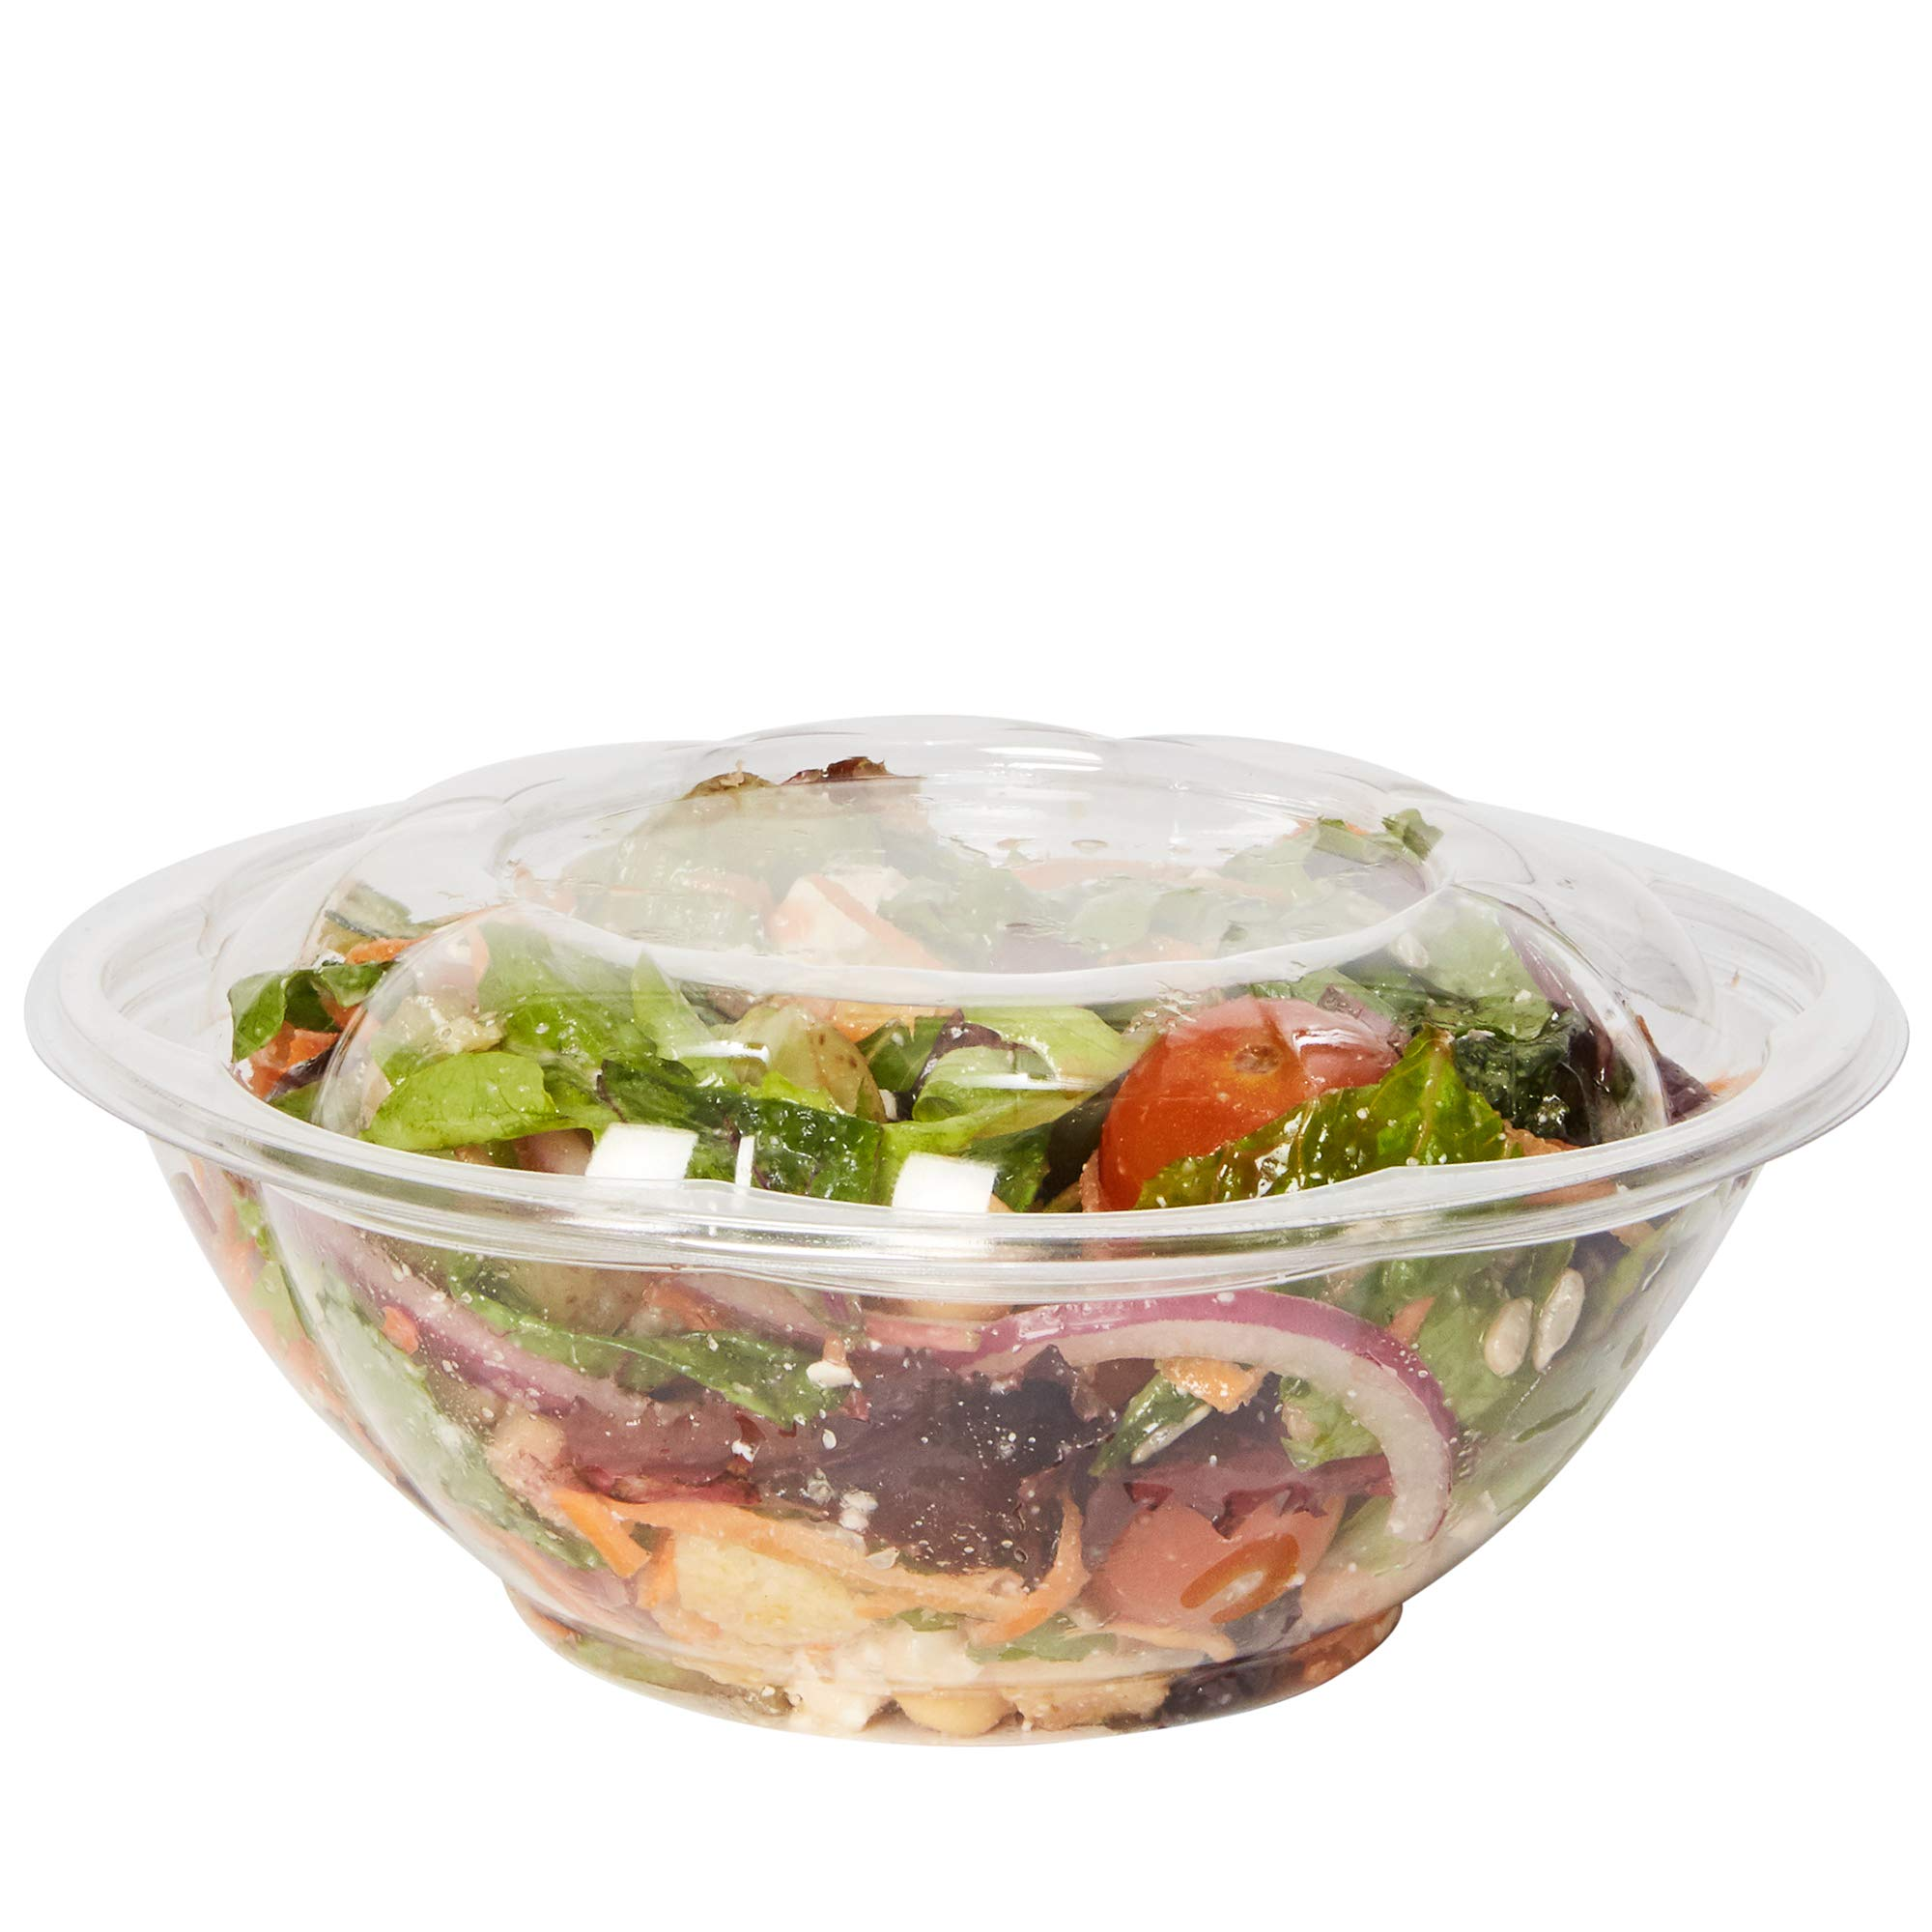 [50 Sets - 24 oz.] Plastic Salad Bowls To-Go With Airtight Lids by Comfy Package (Image #1)